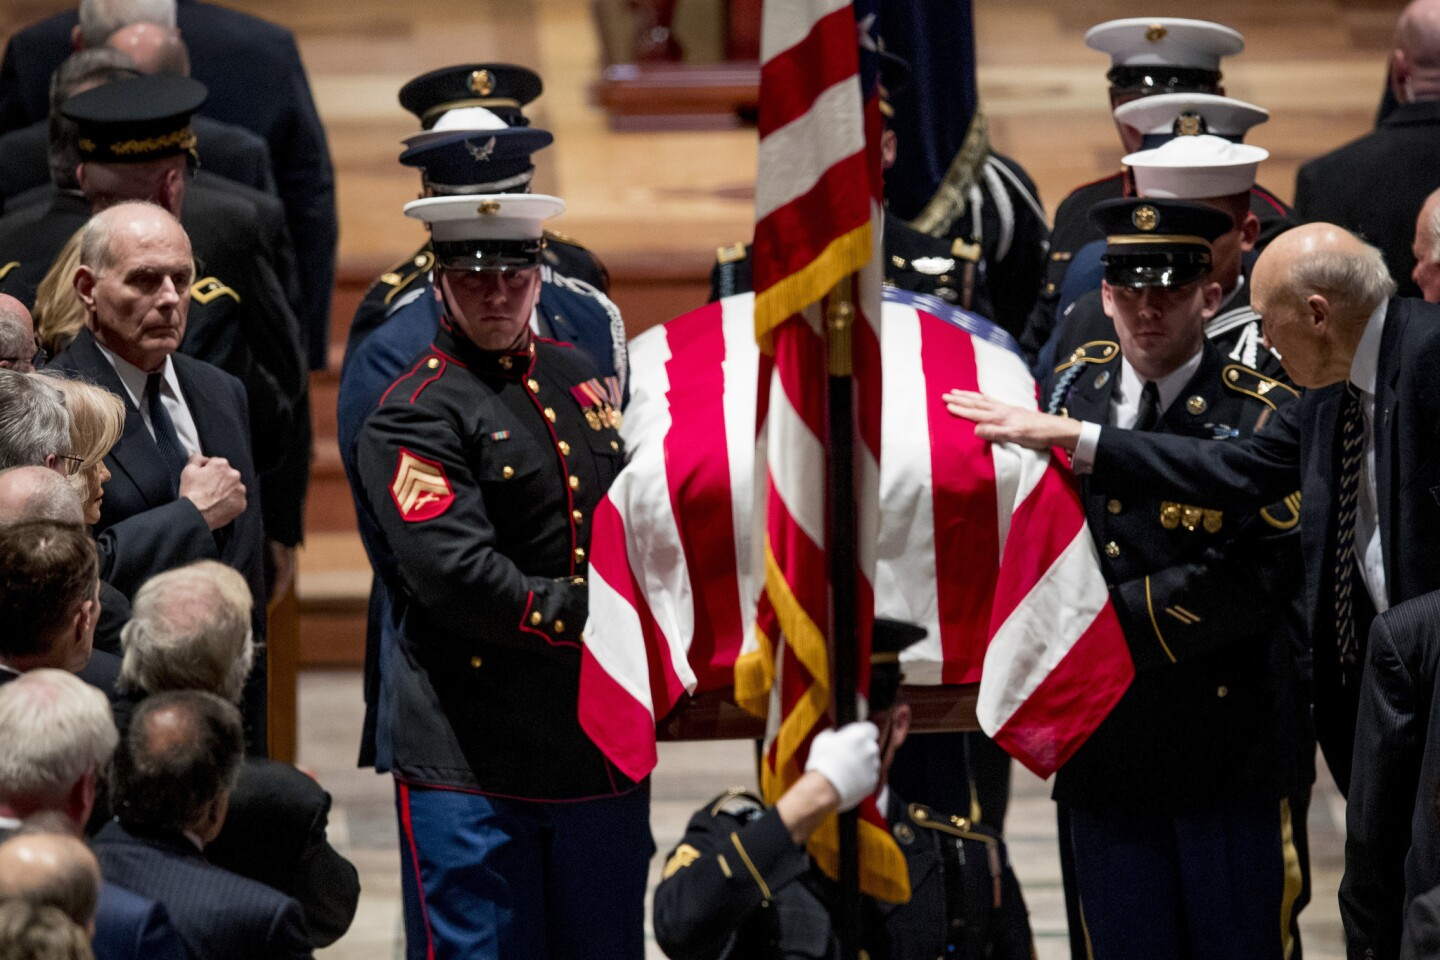 President Donald Trump's Chief of Staff John Kelly, left, watches as Former Sen. Alan Simpson, R-Wyo, right, touches the flag-draped casket of former President George H.W. Bush as it is carried out by a military honor guard during a State Funeral at the National Cathedral.